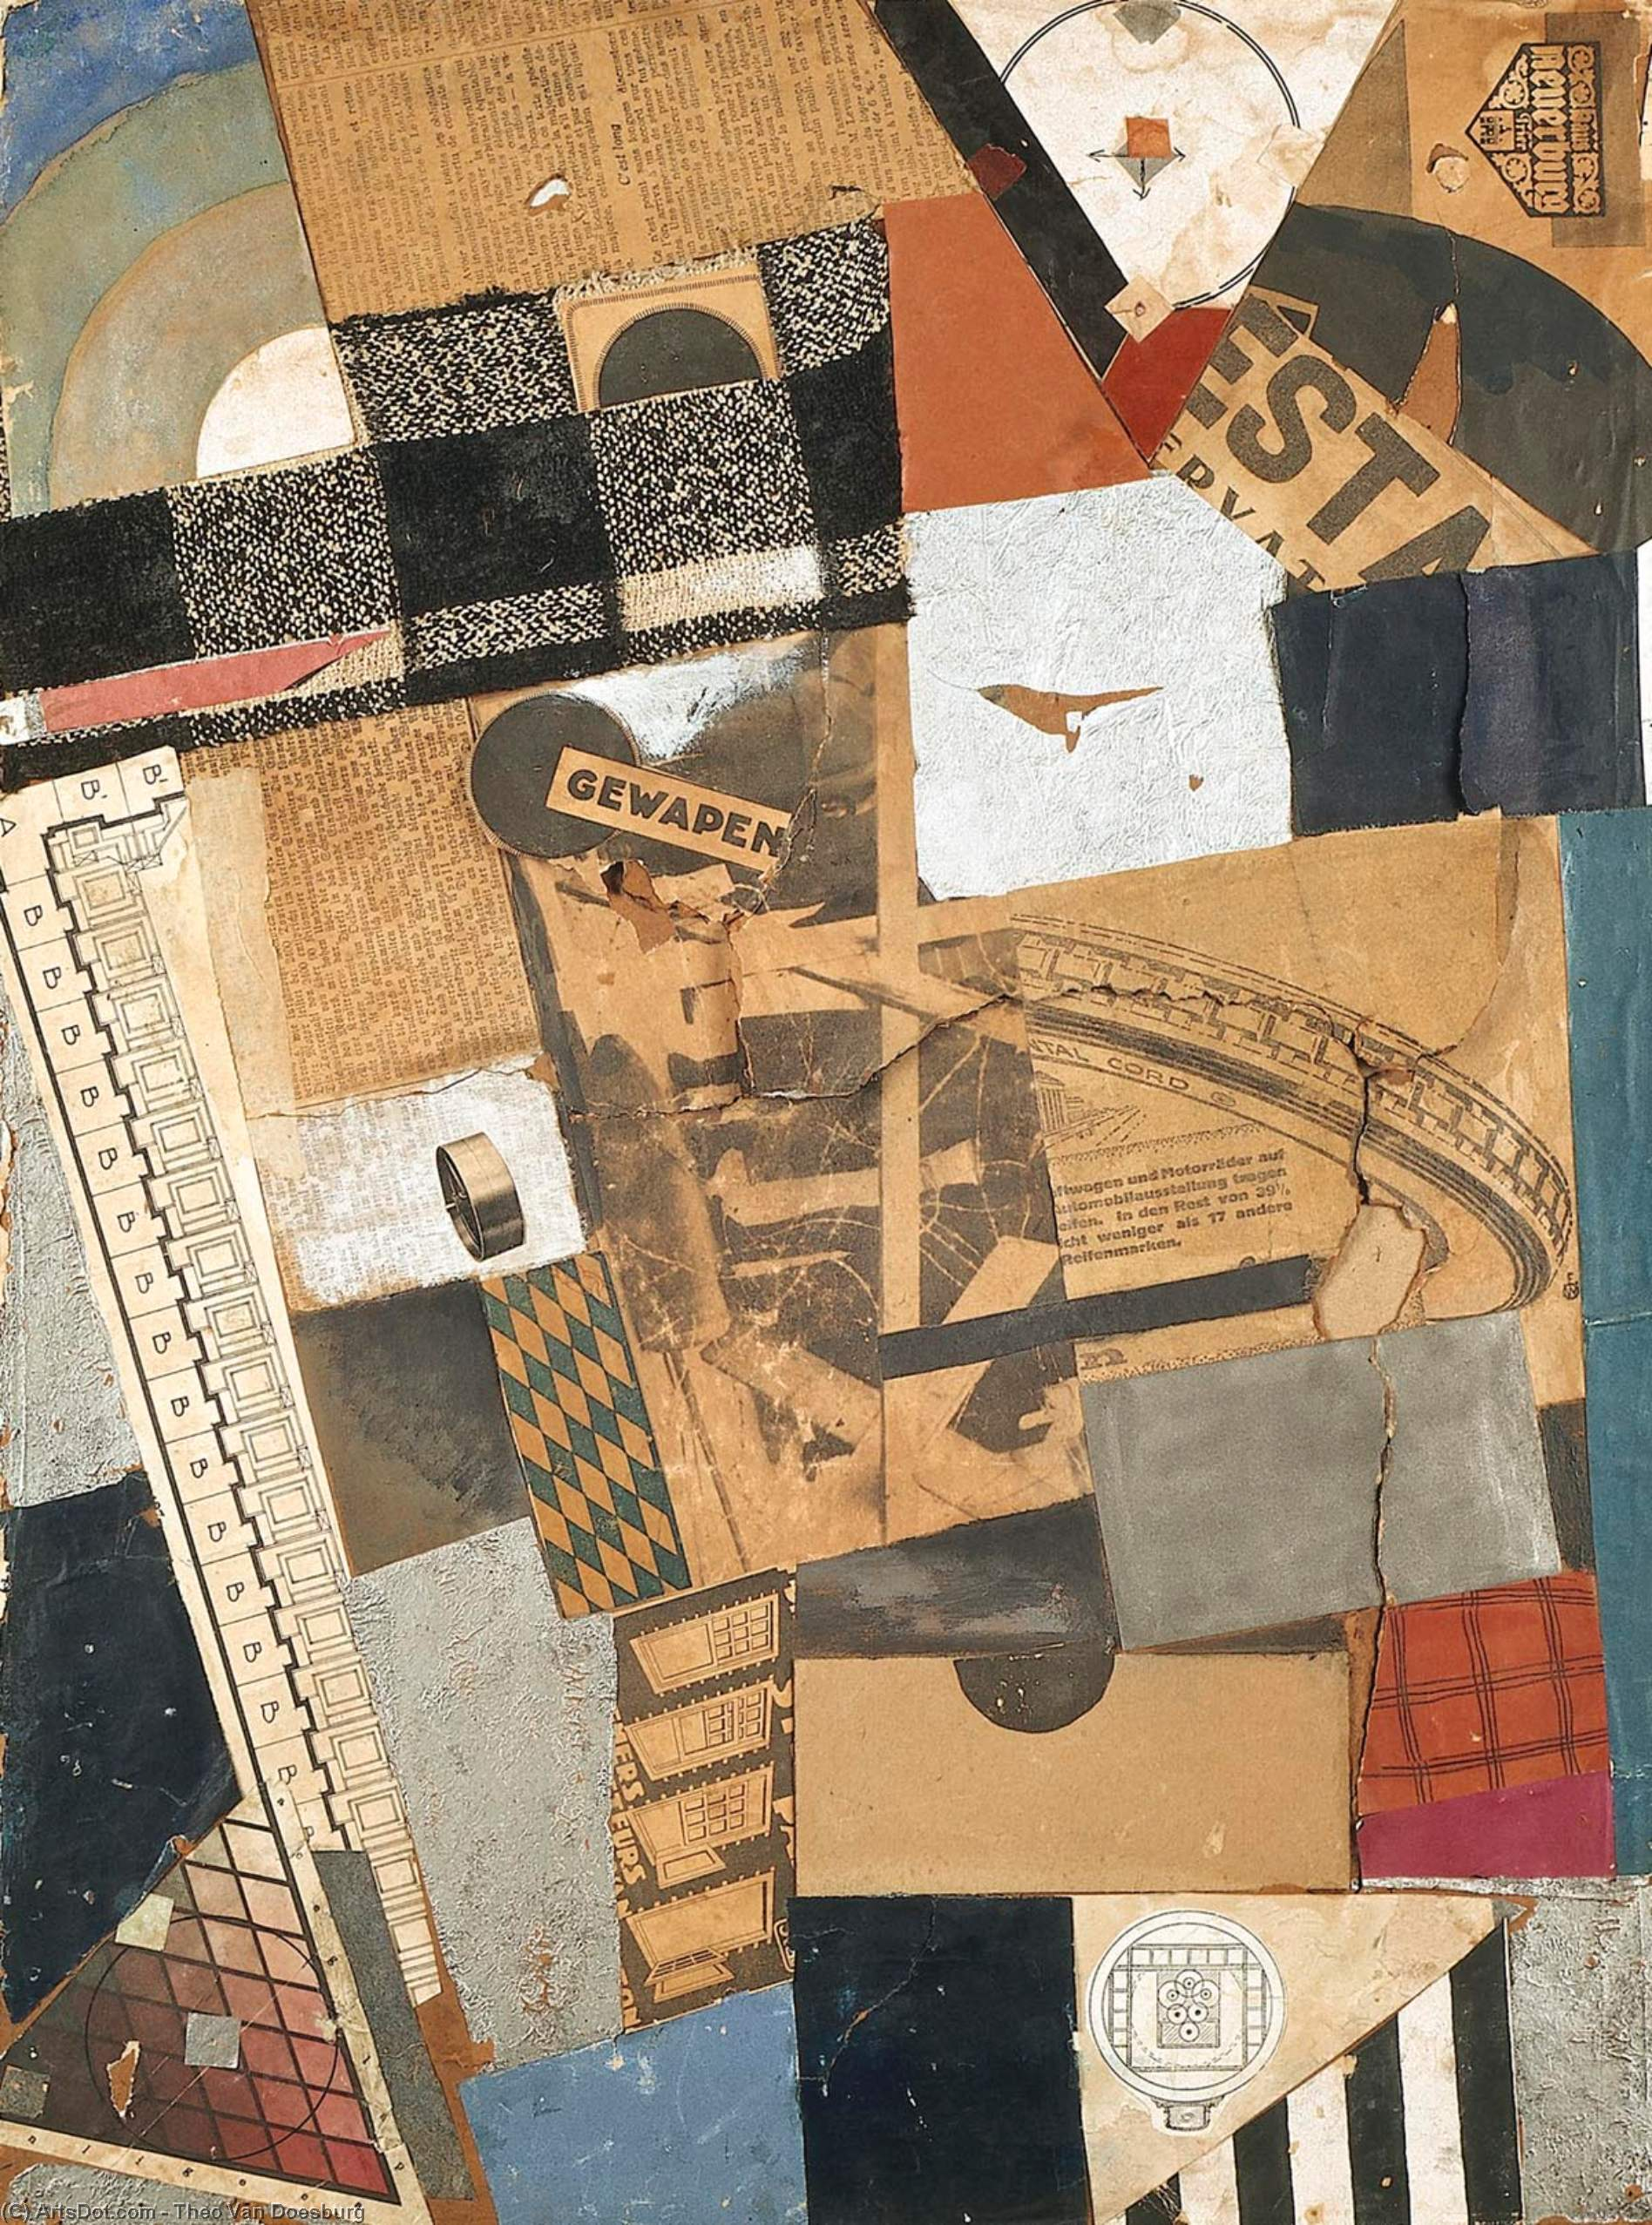 The denaturalized material. Destruction 2., Collage by Theo Van Doesburg (1883-1931, Netherlands)